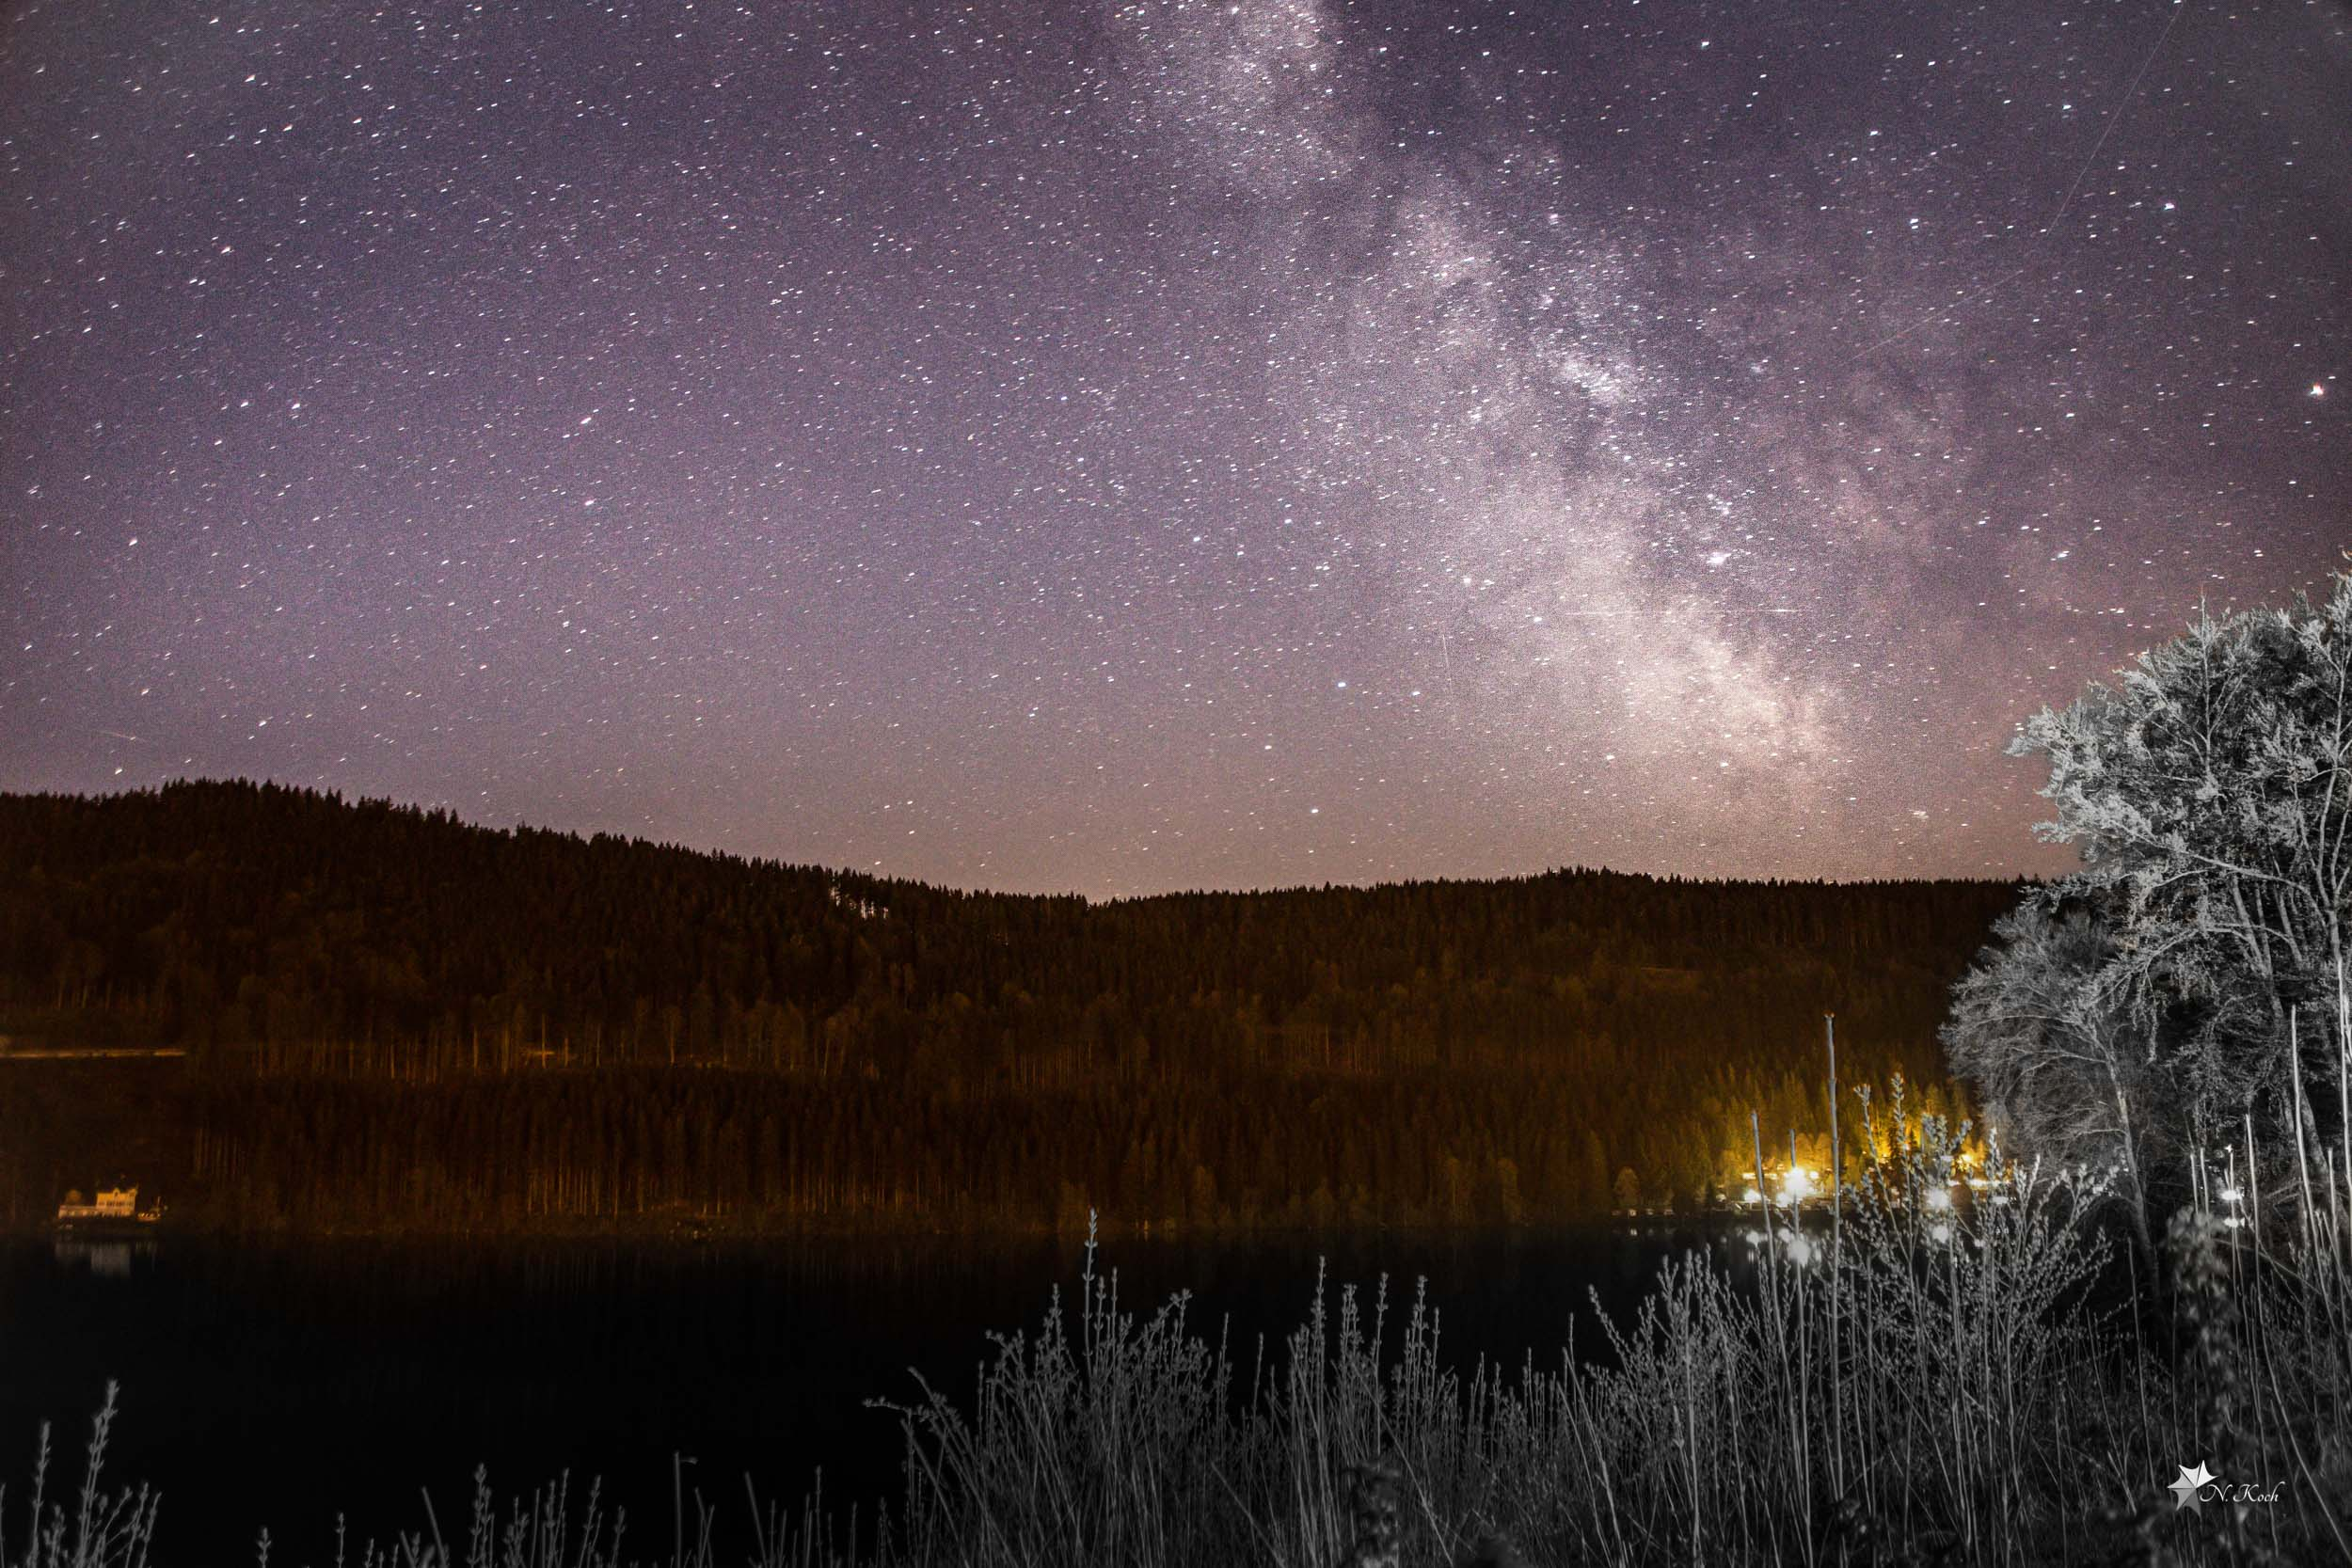 2016, Blackforest | The milkyway above the Titisee